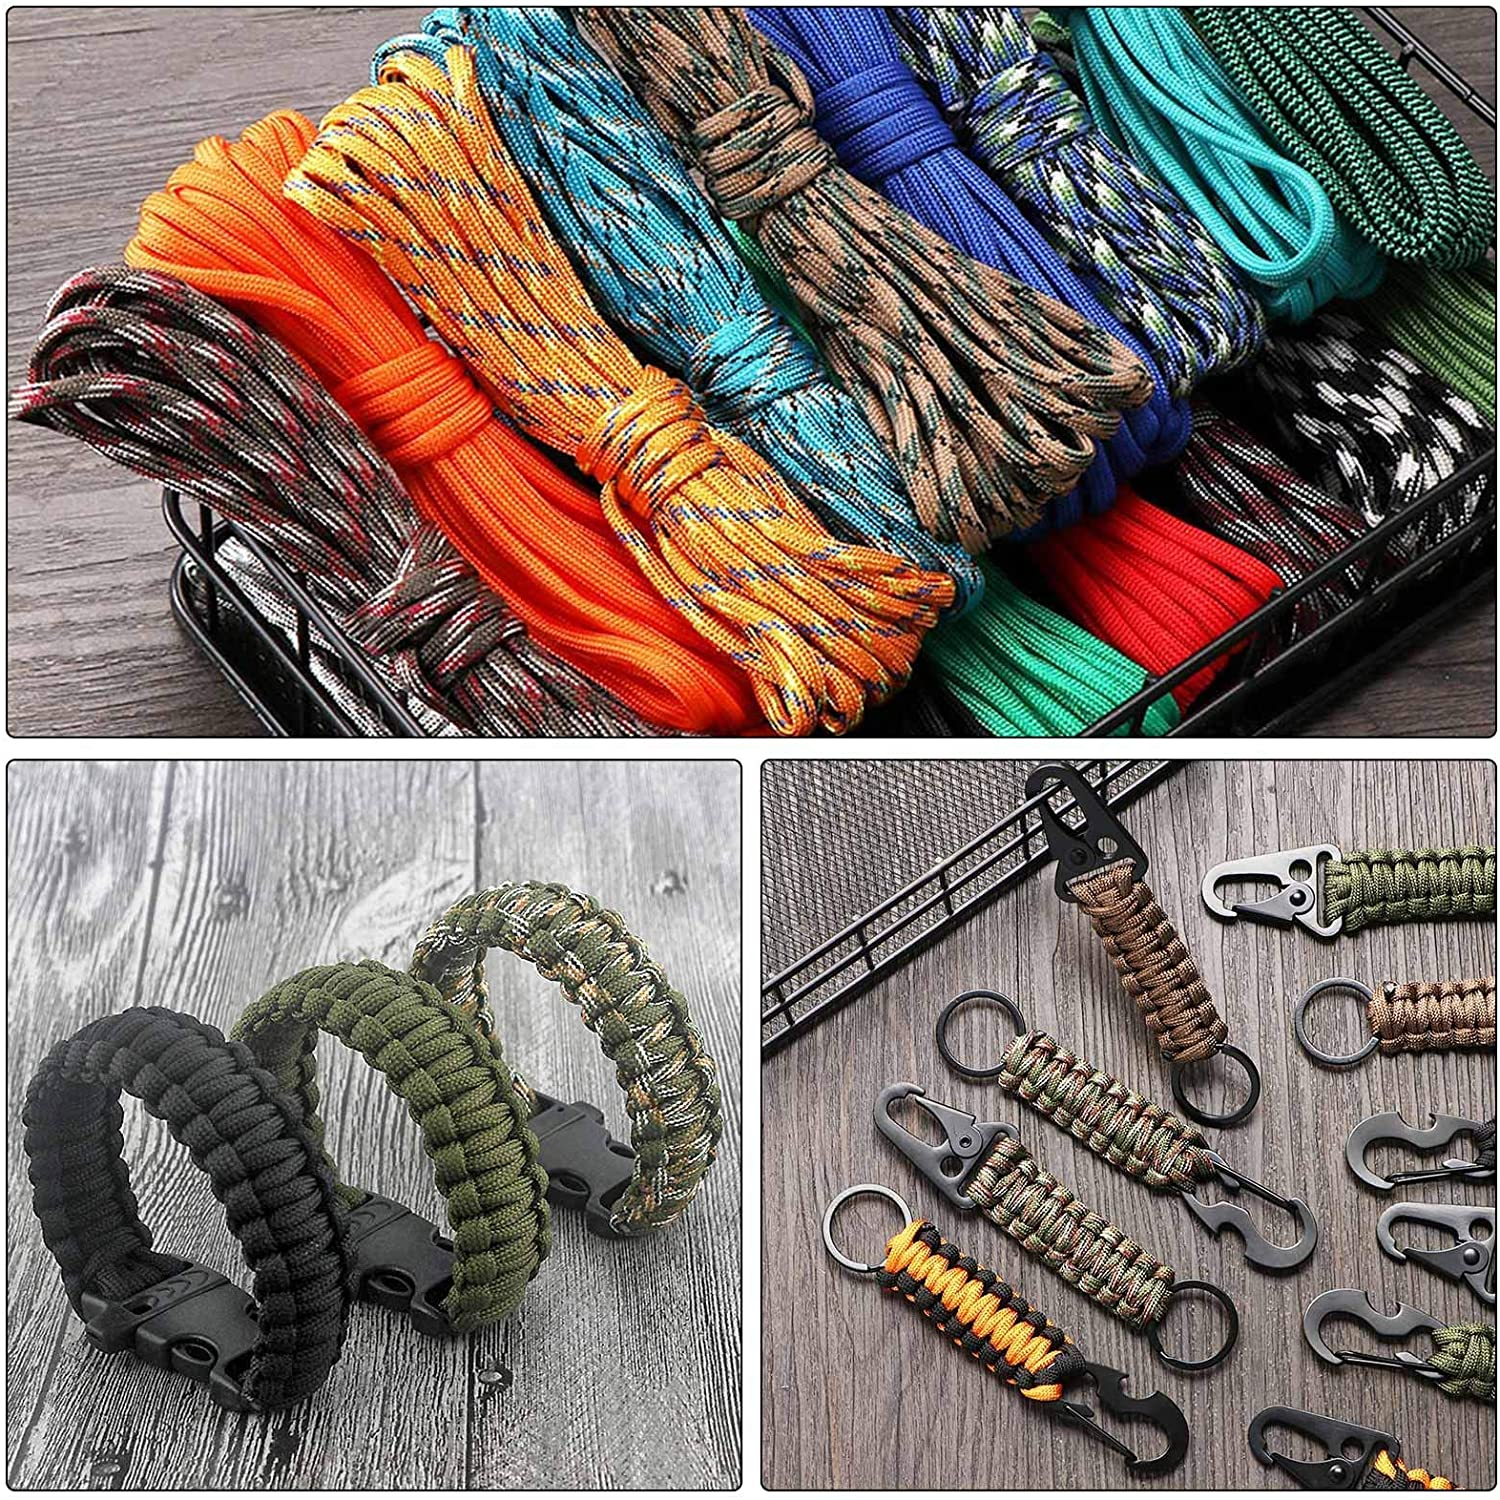 Details about  /Knotter Tools 12PCS Stainless Steel FID Paracord FID Set with Marlin Spike